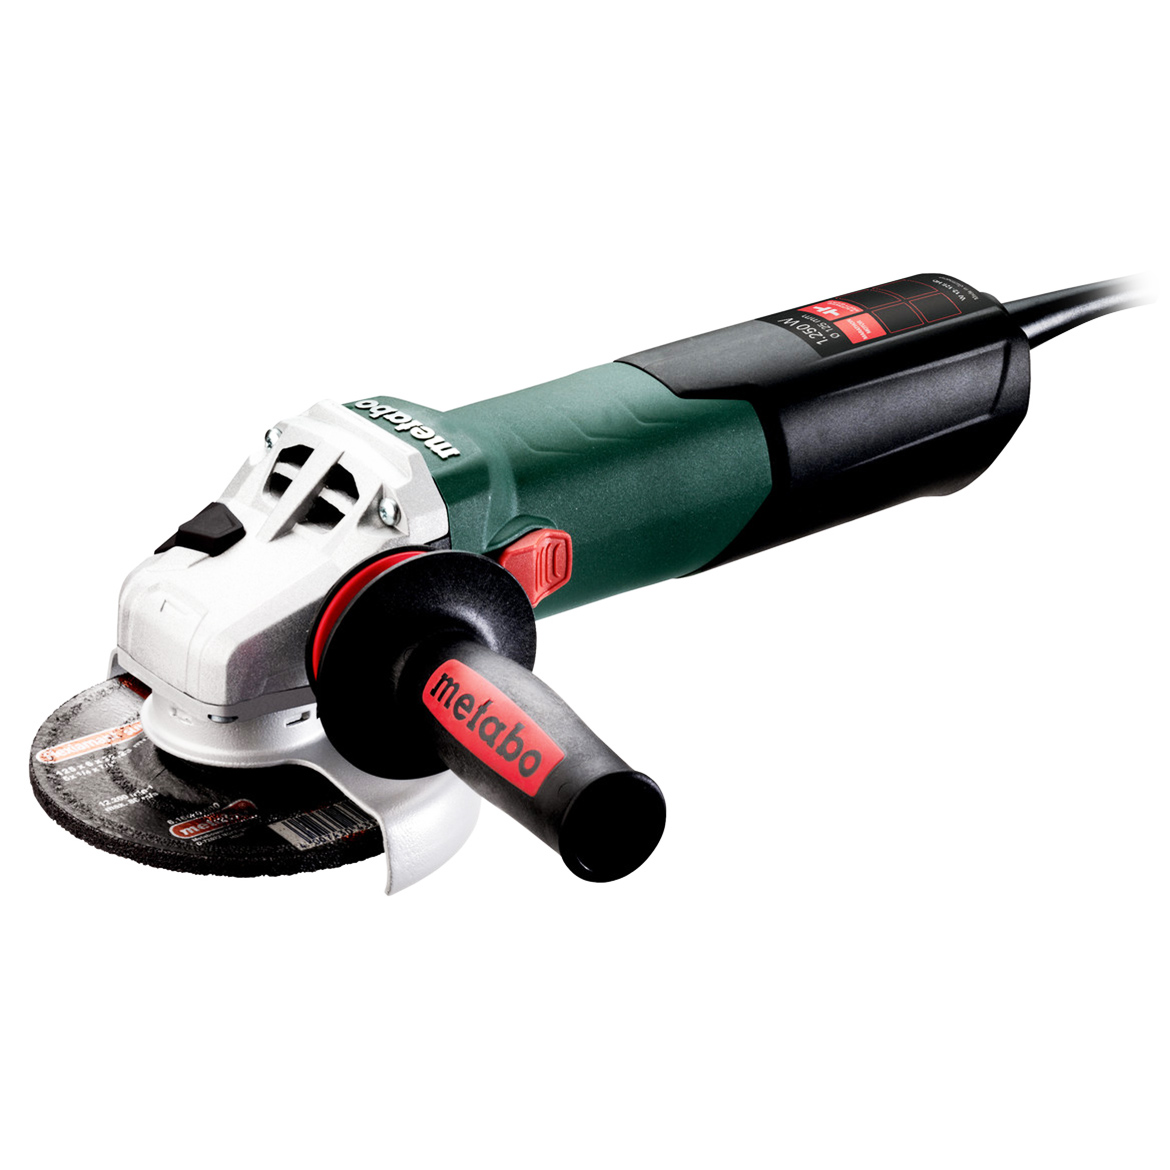 Metabo 600408420 5-Inch 10.5-Amp 9,600 RPM Angle Grinder with Lock-On Switch